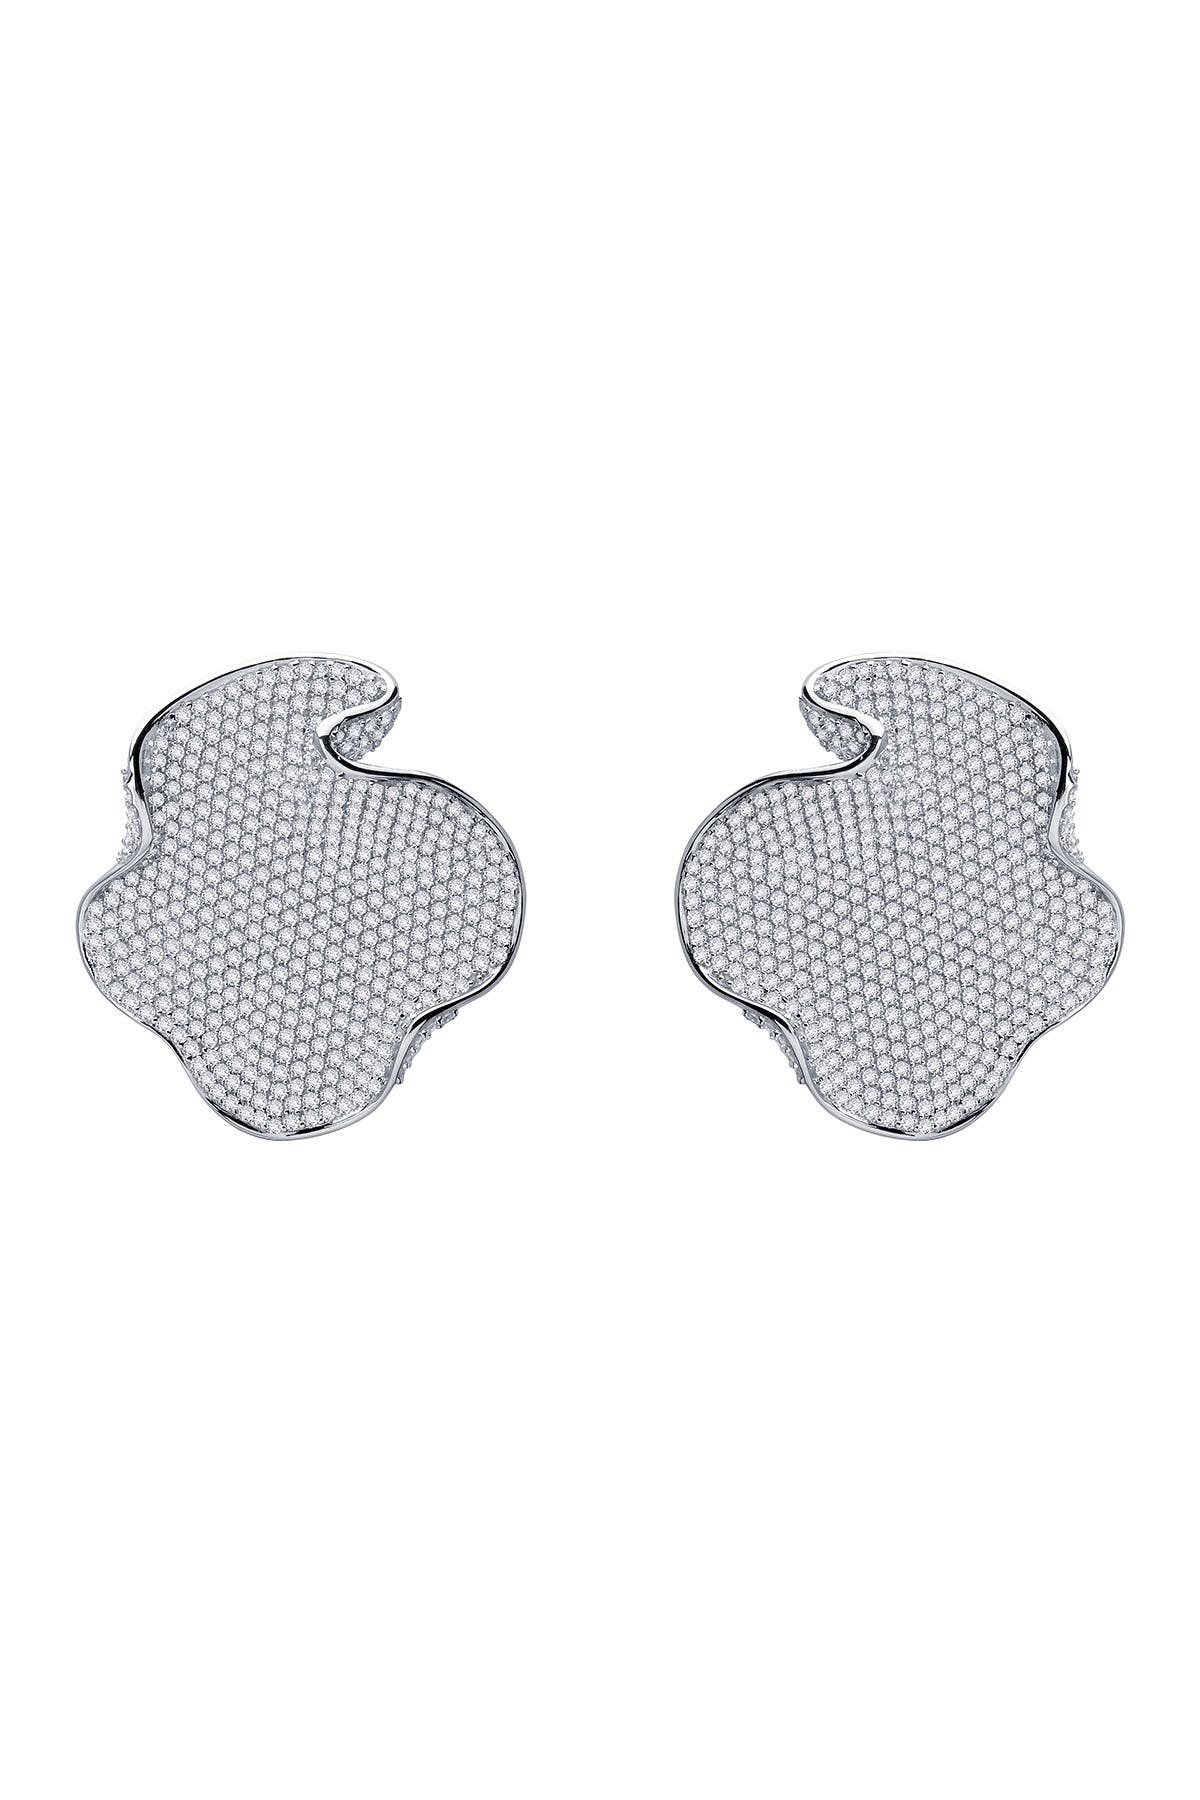 Image of LaFonn Platinum Bonded Sterling Silver Pave Disc Drop Earrings